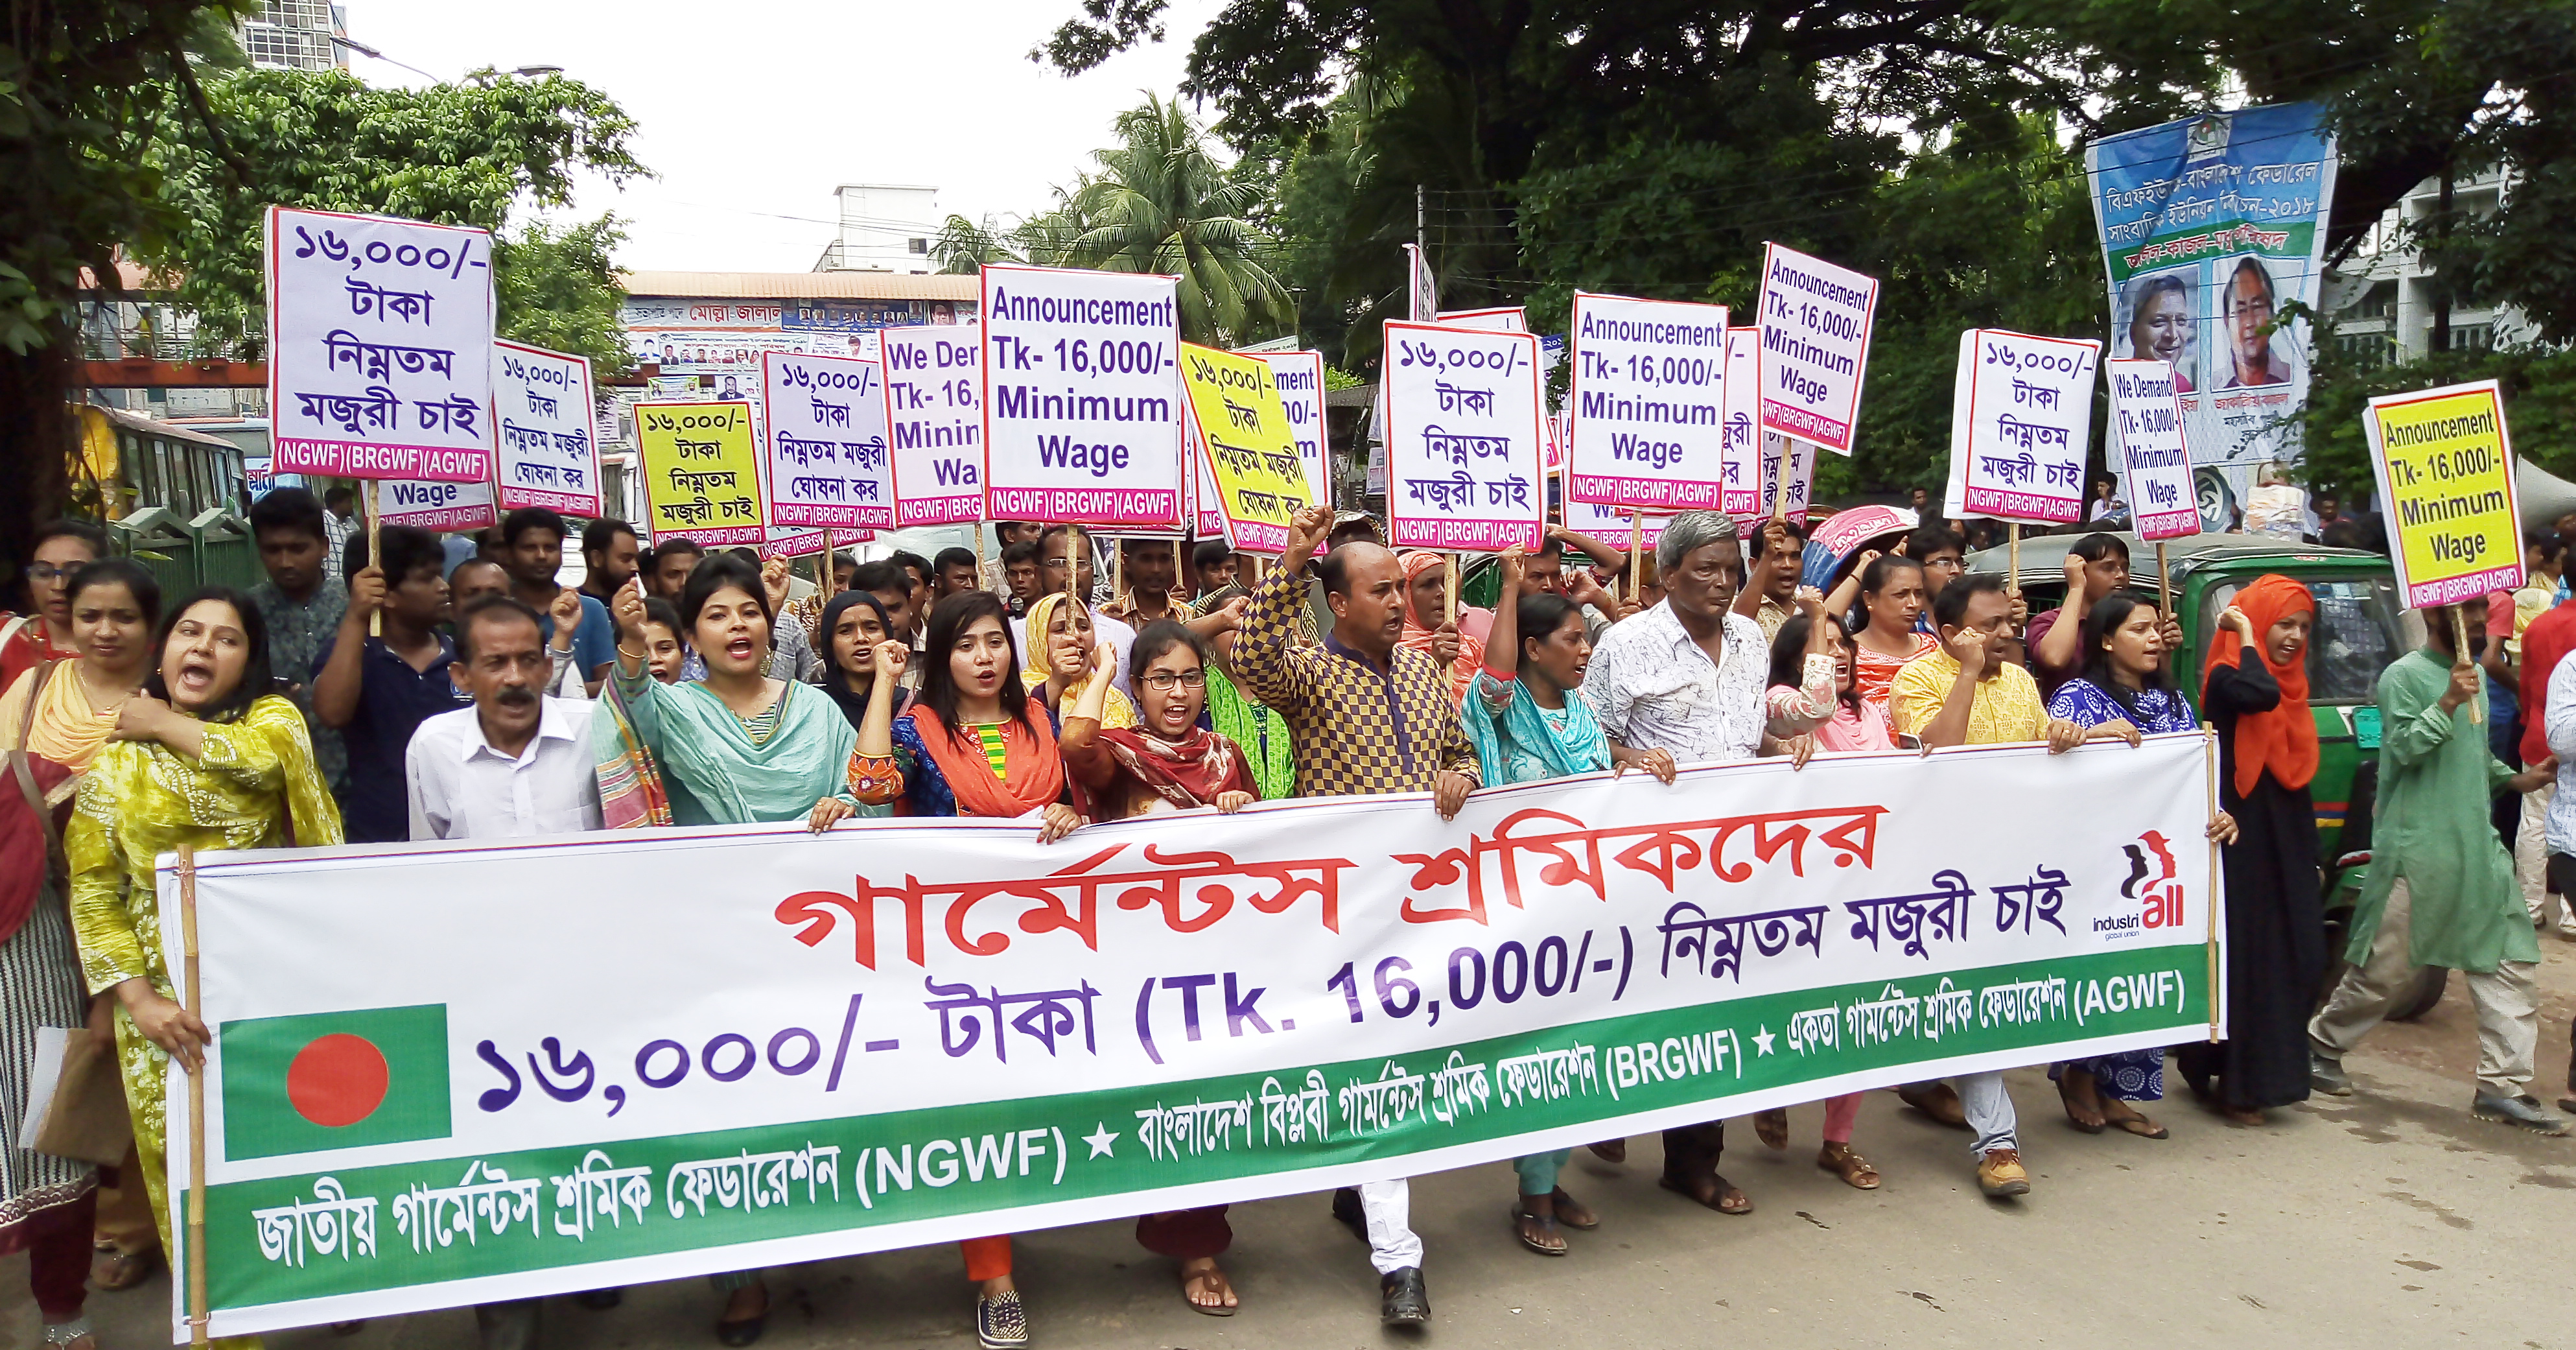 Clean Clothes Campaign condemns employers'minimum wage proposal for workers in Bangladesh and urges brands to take action